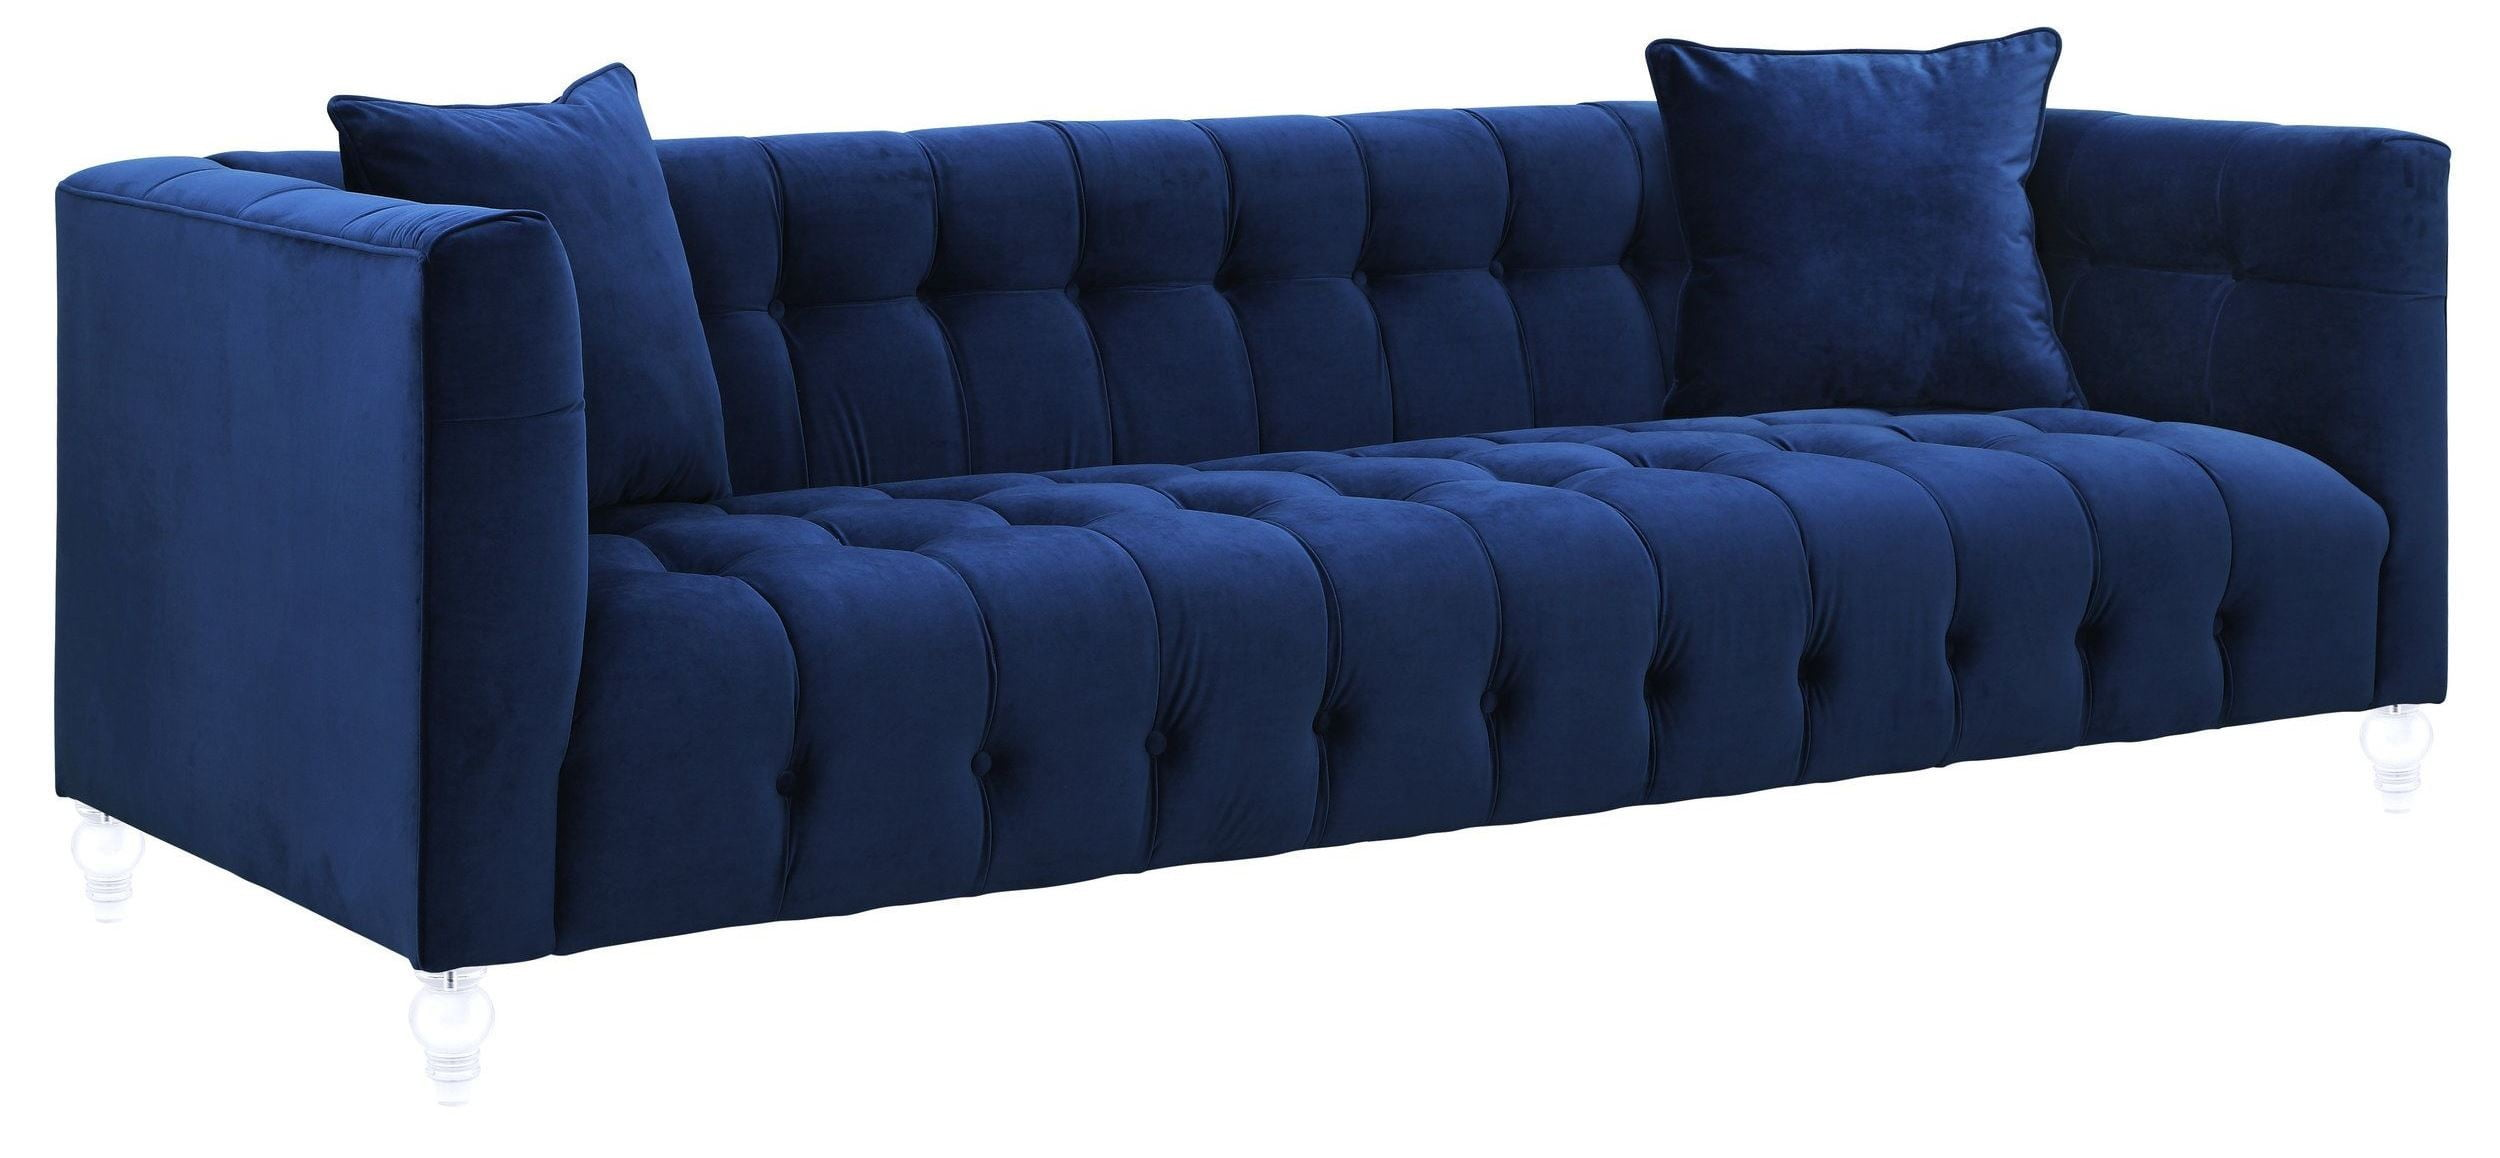 Bea Navy Velvet Sofa from TOV TOV S85